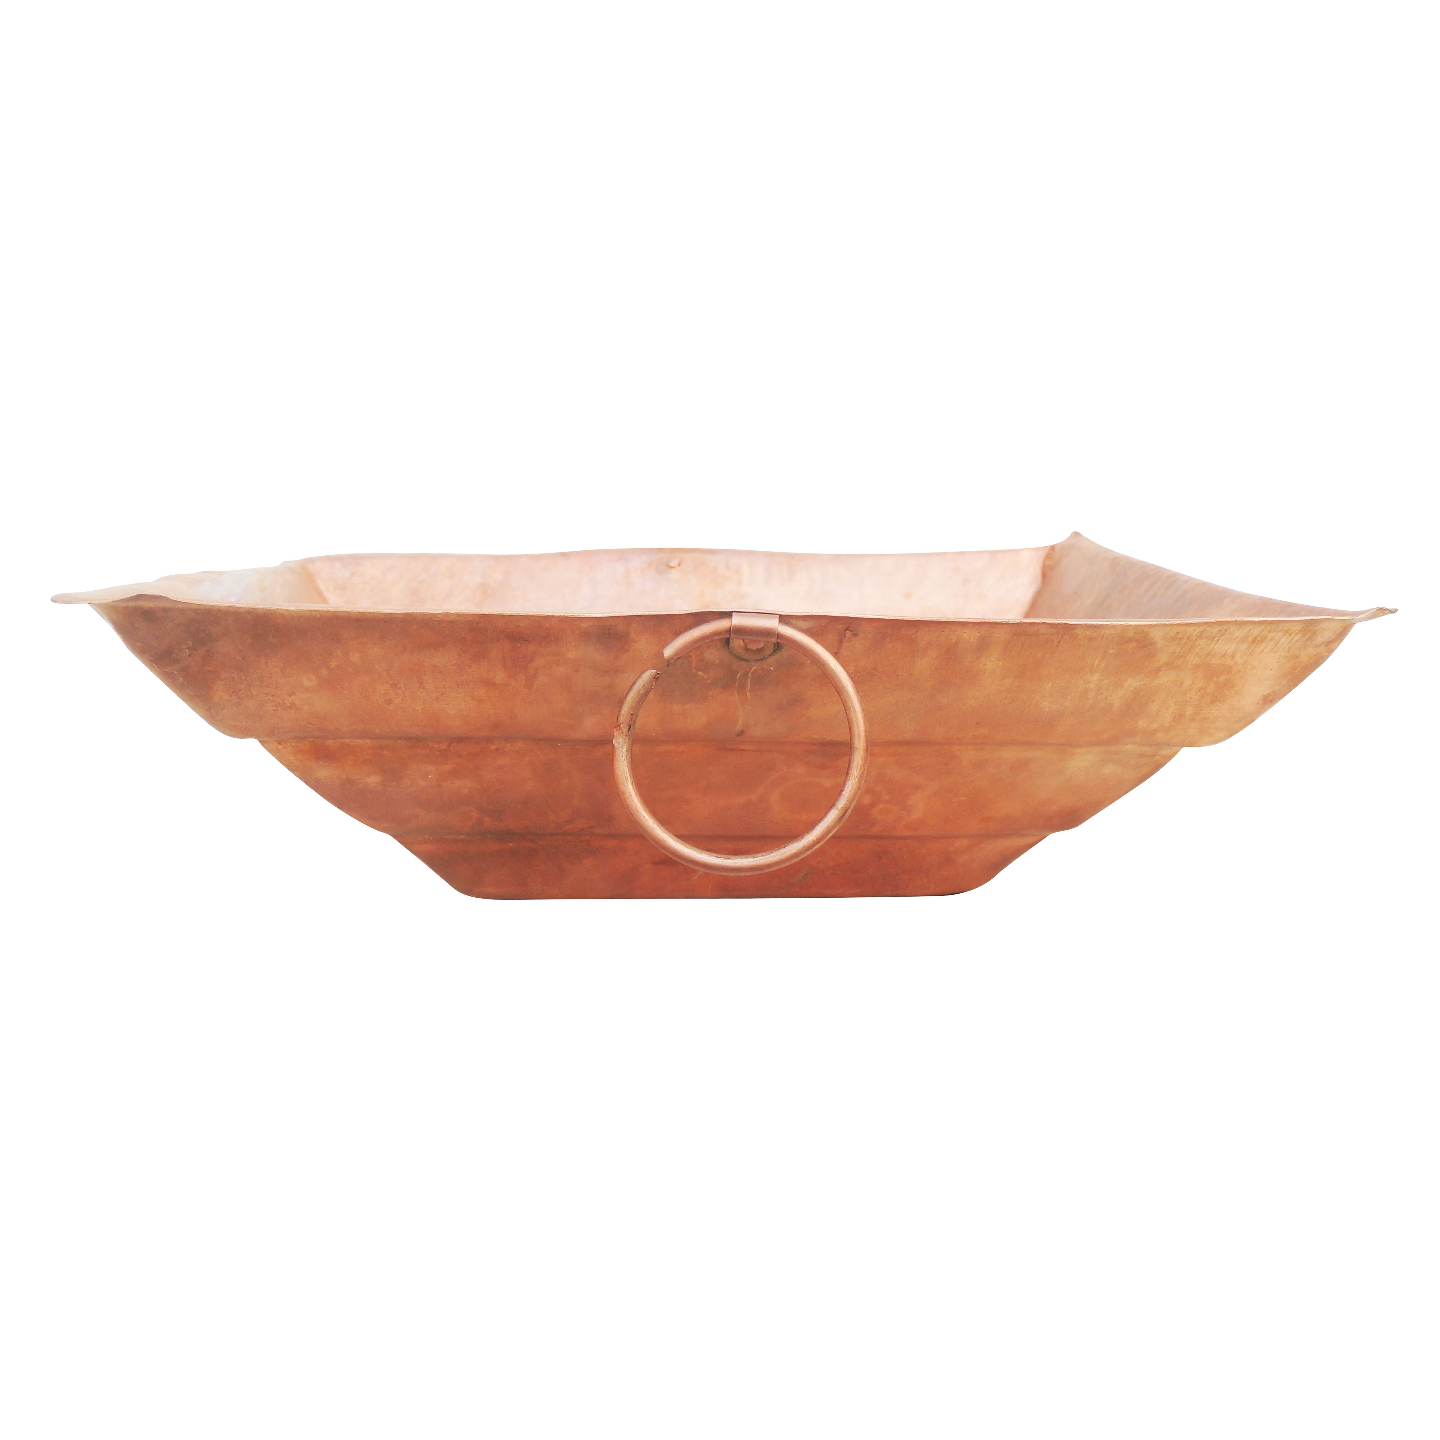 Copper Hawan Kund For Pooja Purpose No. 22 - 16 Inch (Z294 N)